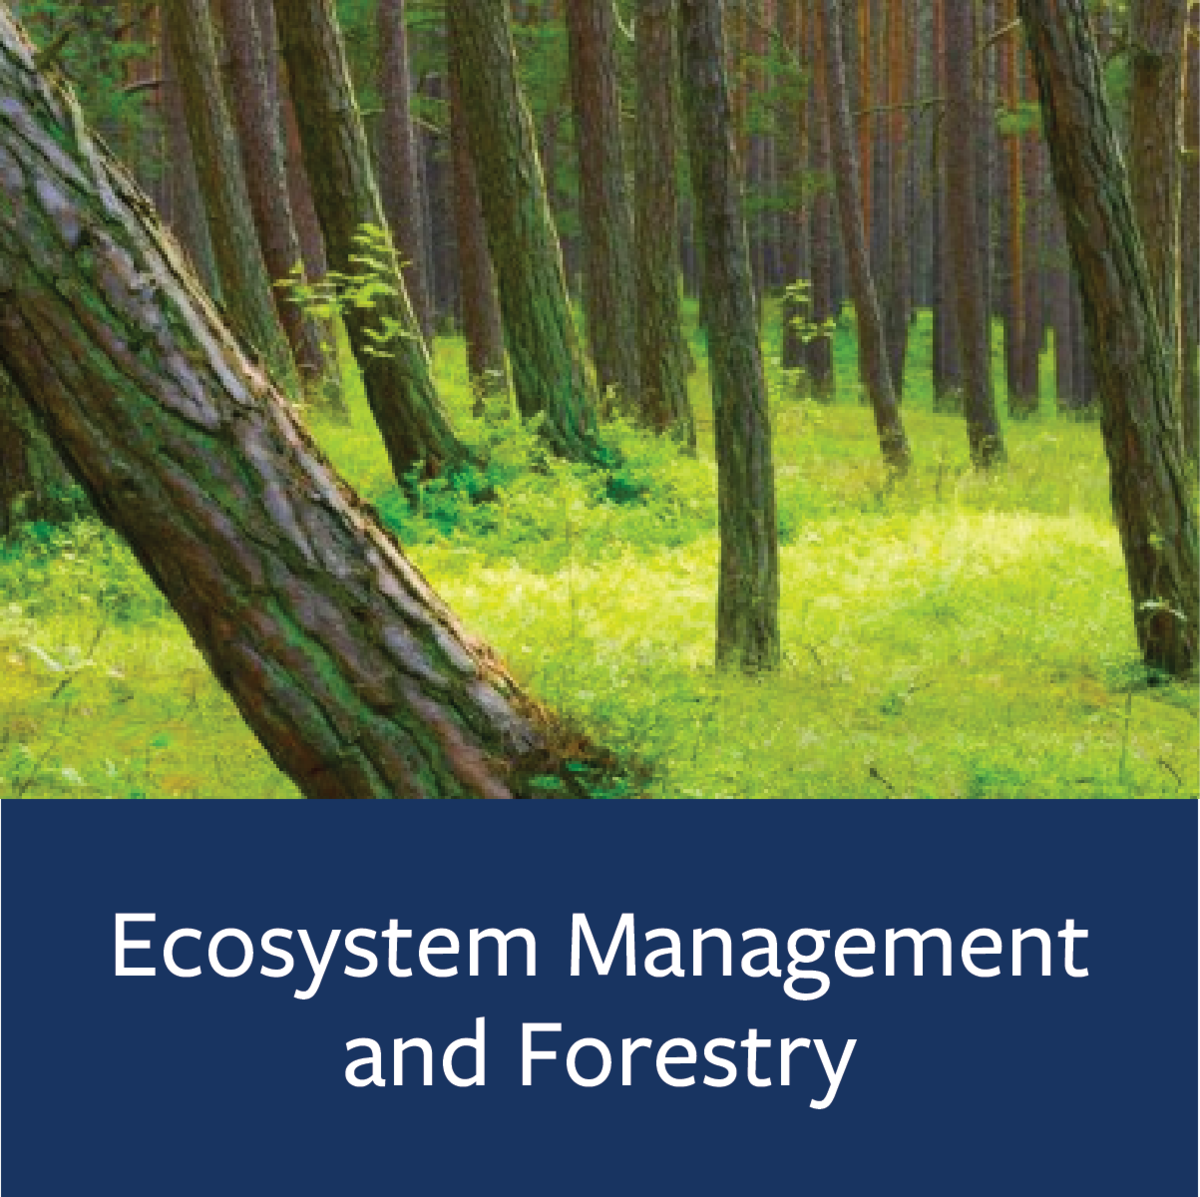 Ecosystem Management and Forestry Major Map